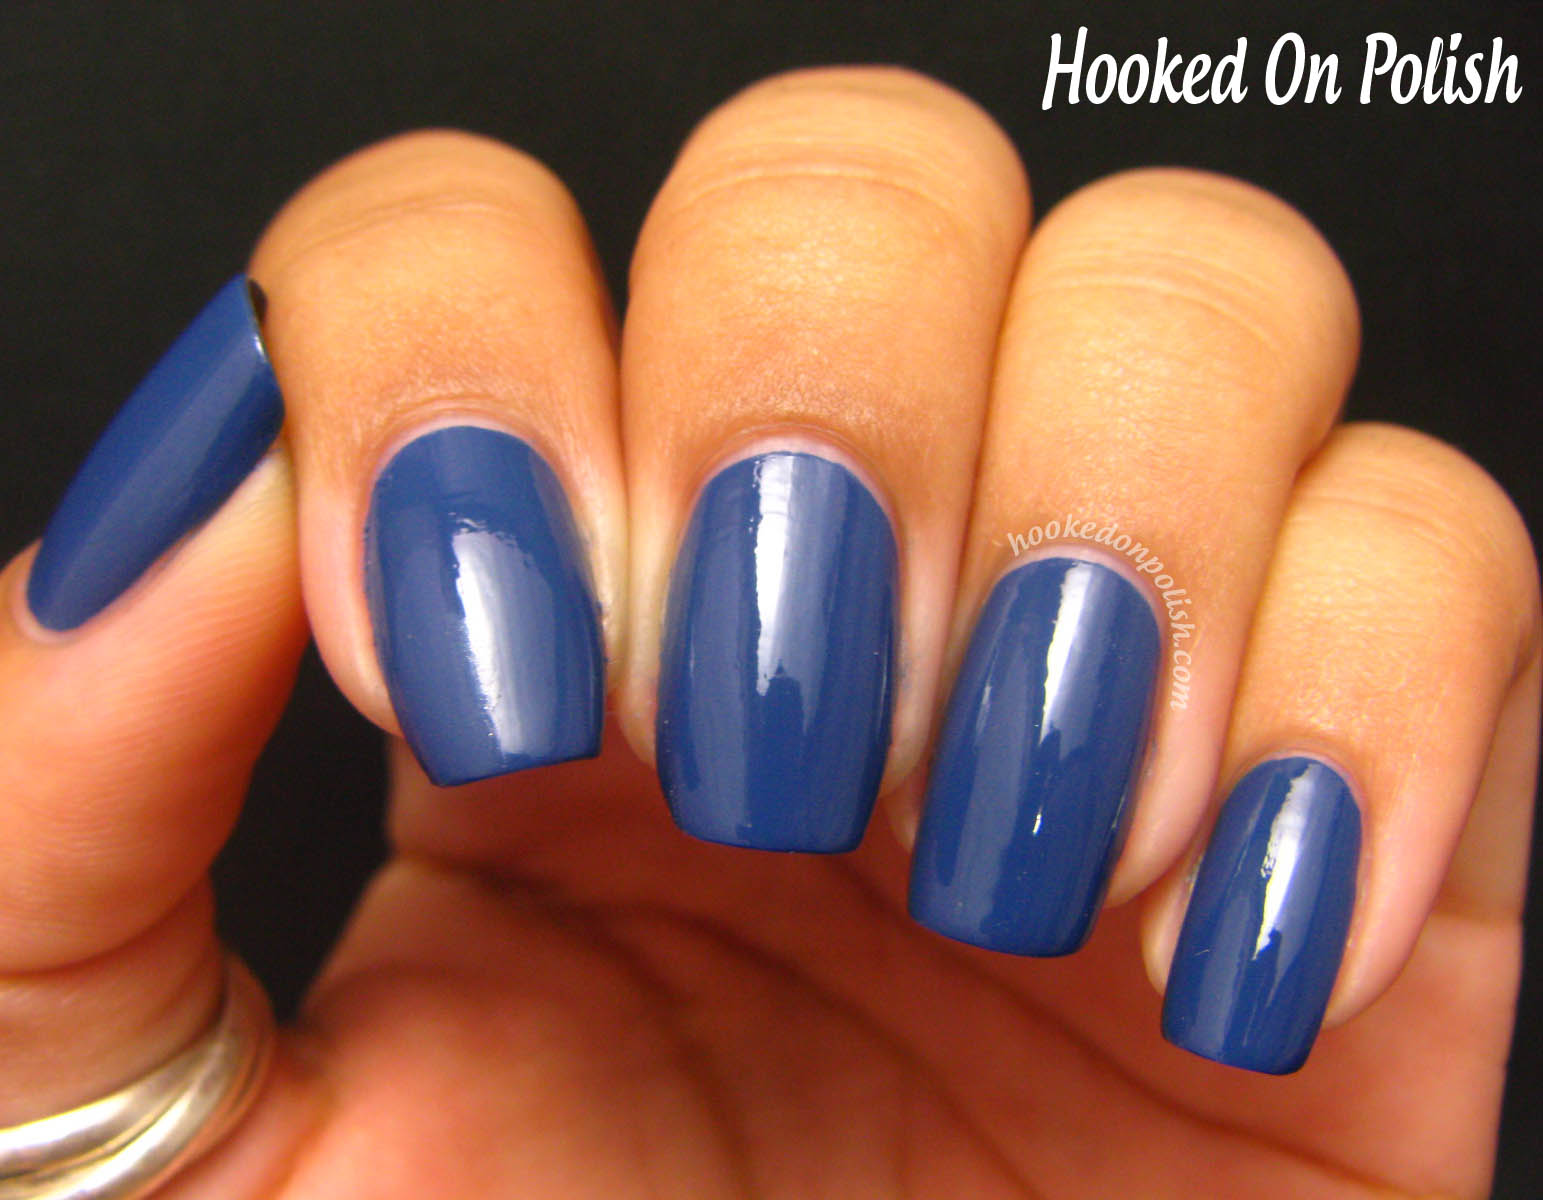 Hooked On Polish: Pastel Glitter and Blue Nails for Diabetes